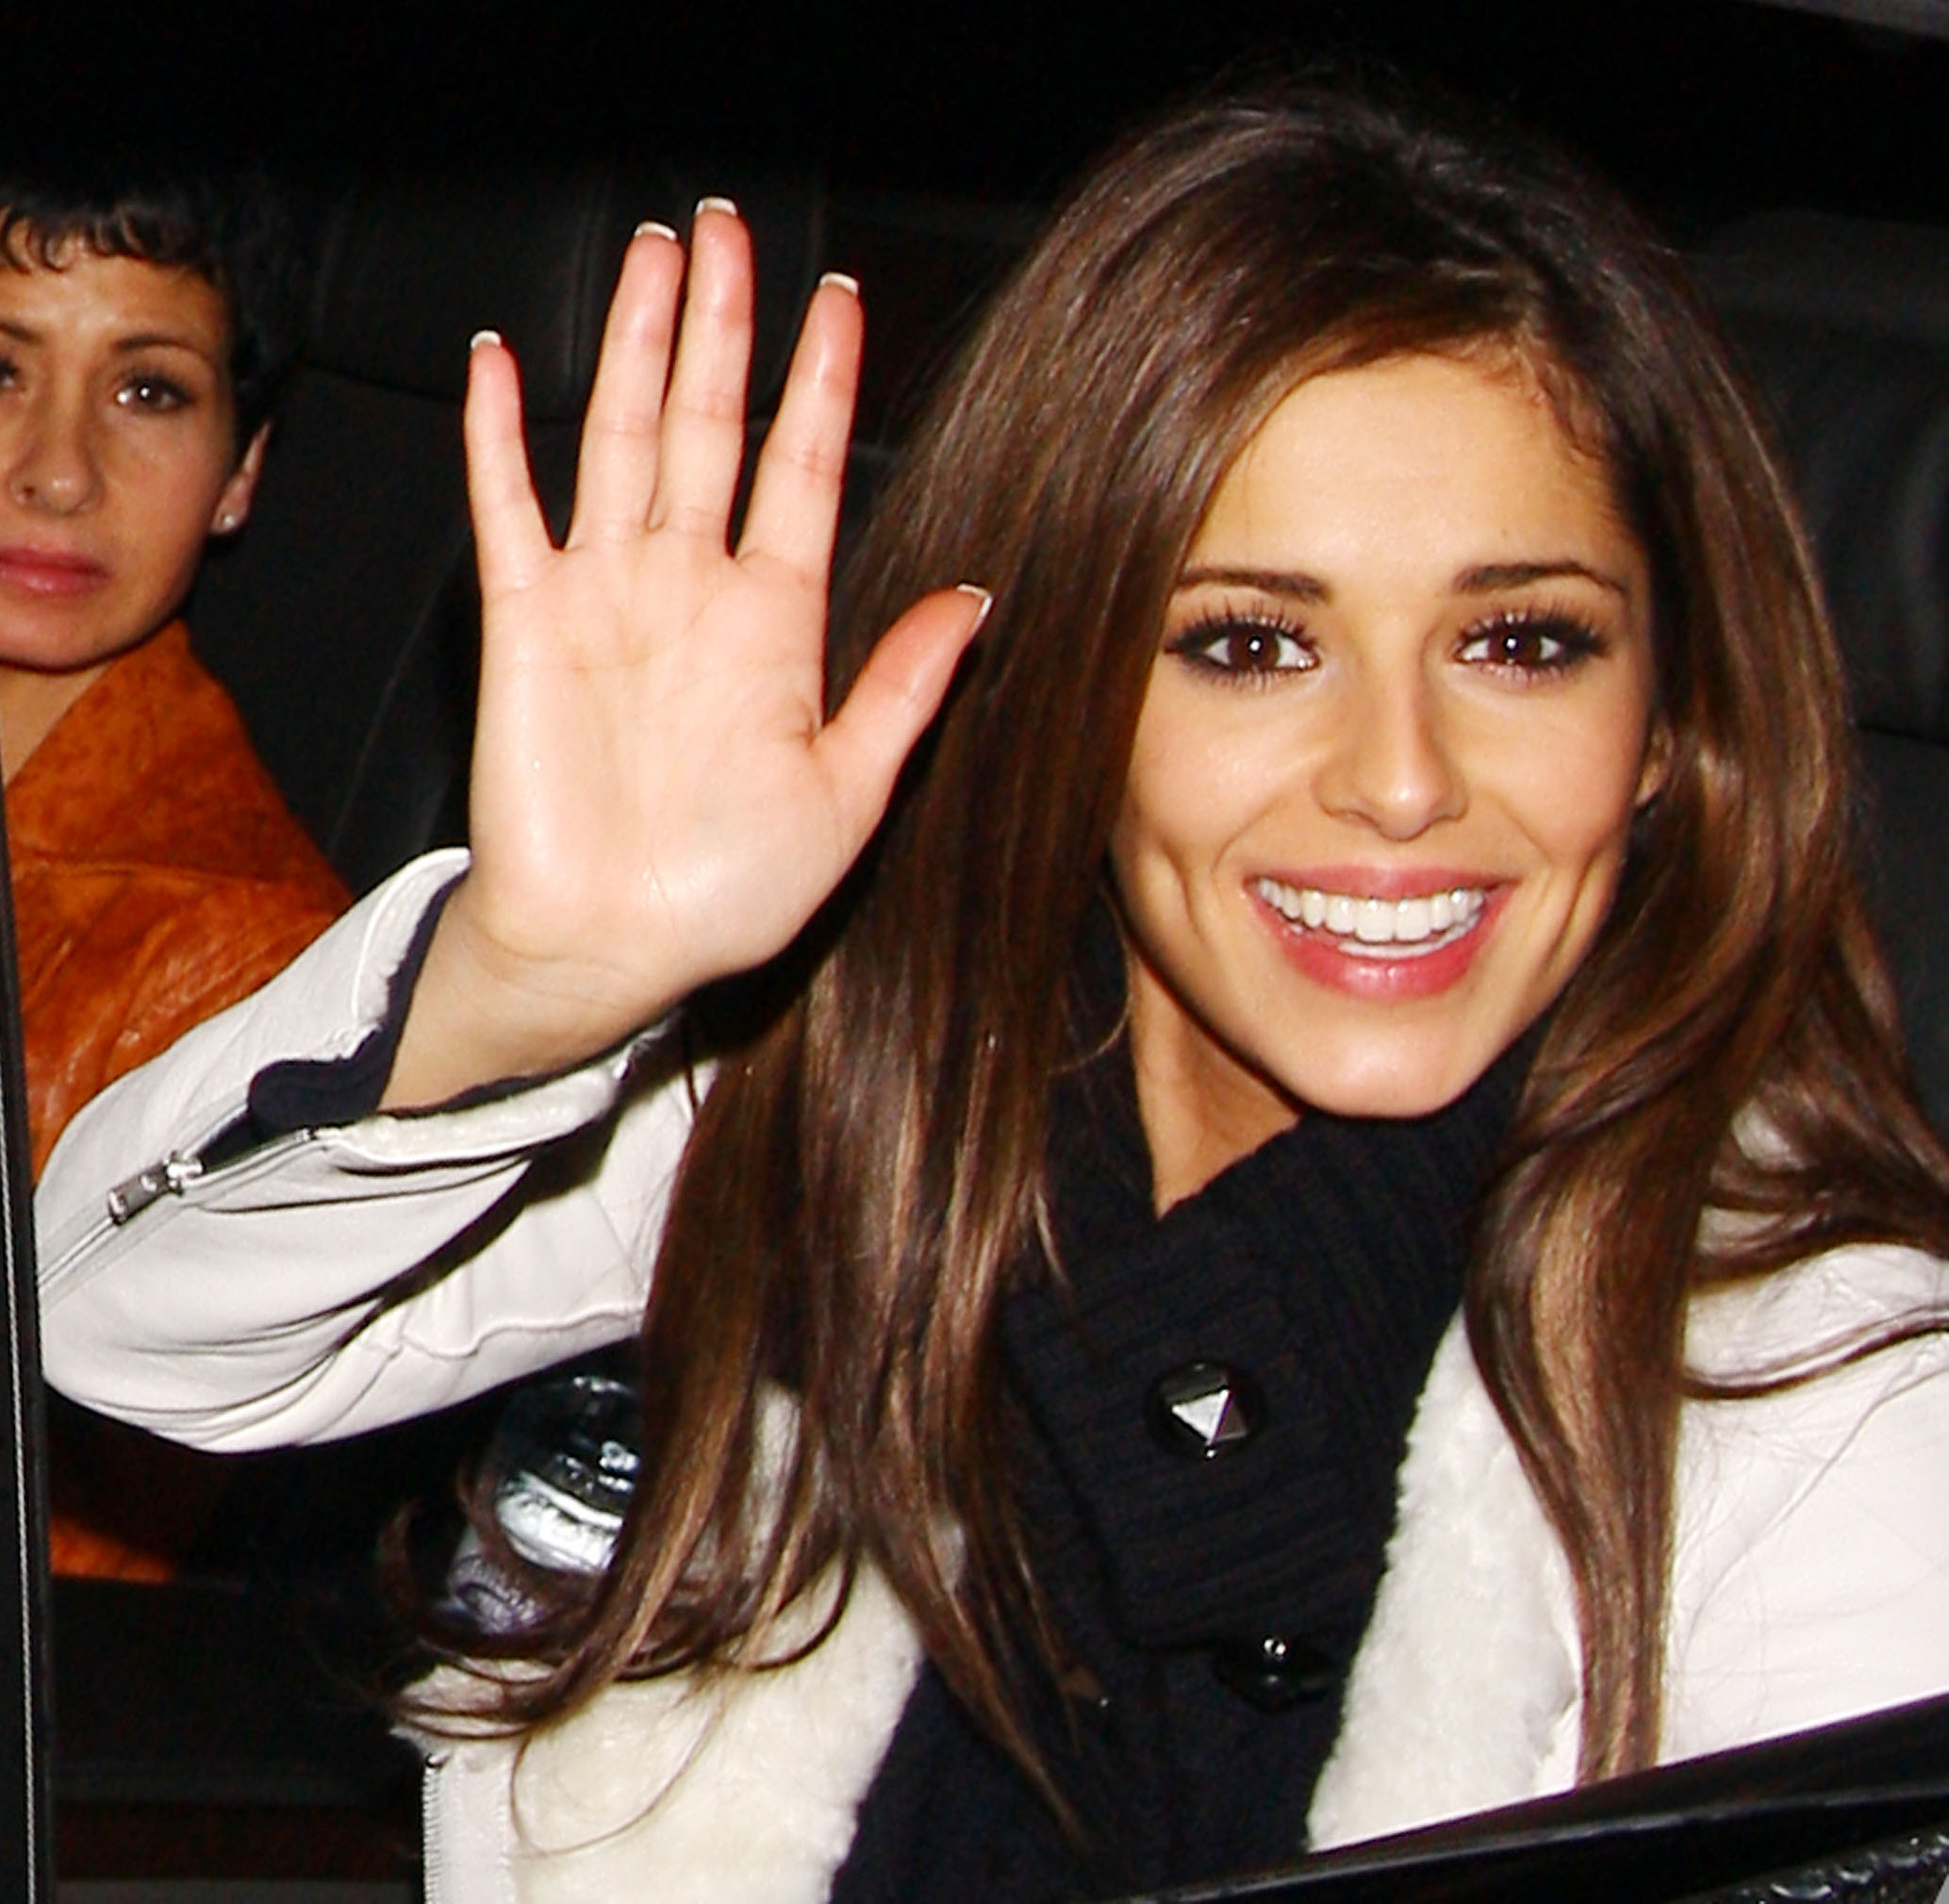 http://thebosh.com/celebritypictures/sites/default/files/photos/image_1/cheryl_cole_2_wenn2216597.jpg